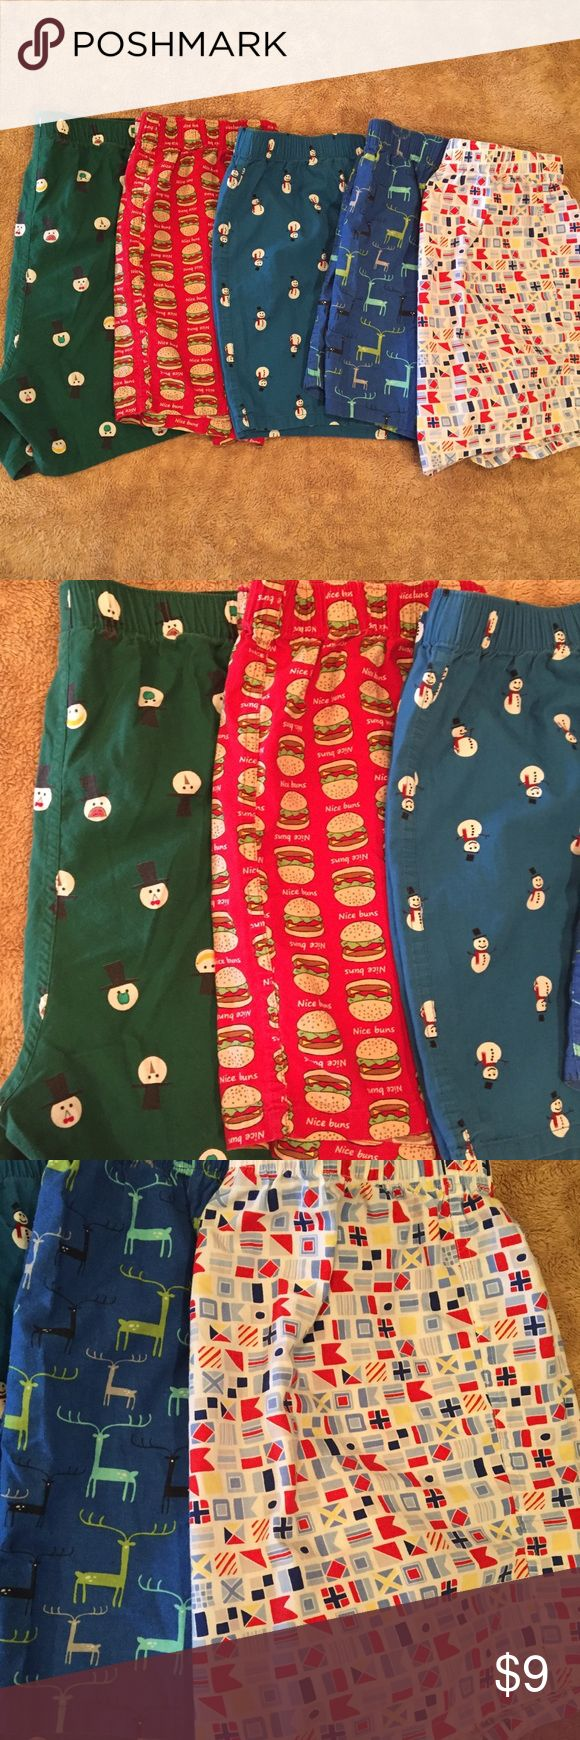 Set of 5 Fun boxers Gently used, set of fun boxers. Perfect for the teen in your house. 100% cotton. Old Navy Underwear & Socks Boxers